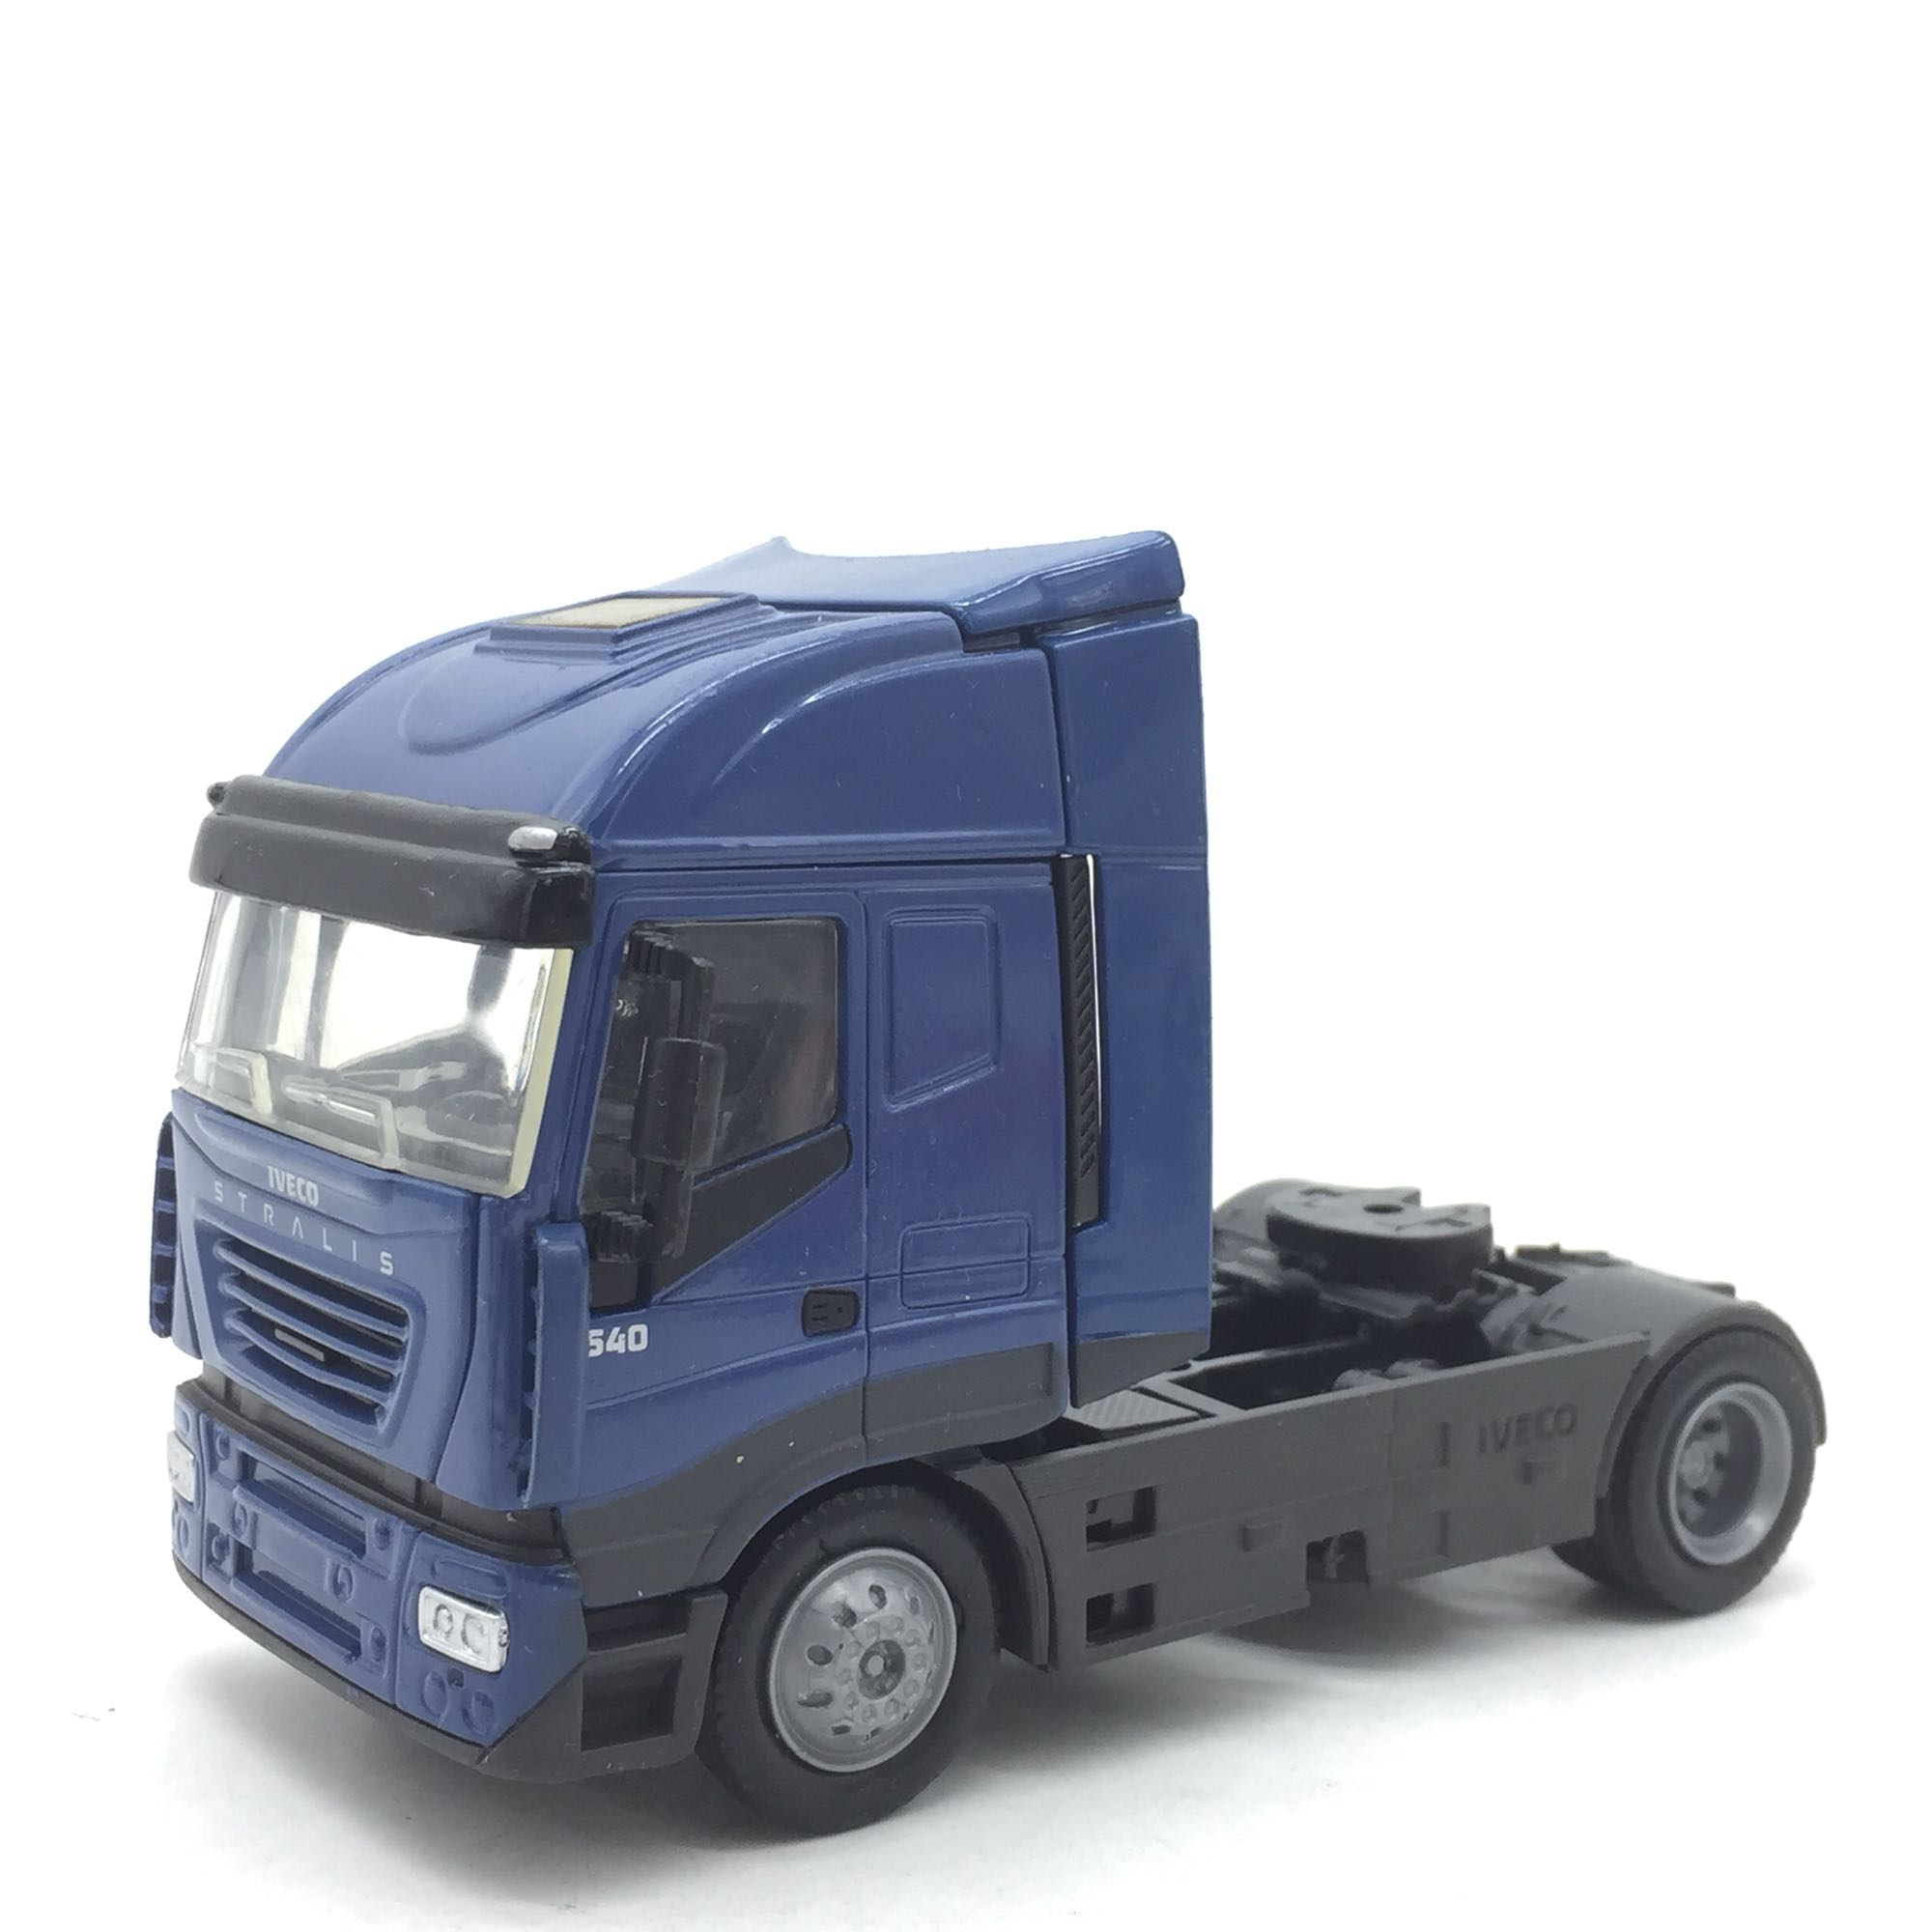 <font><b>1:43</b></font> sacle alloy iveco Transport vehicles,high simulation iveco Heavy Duty Trailer,Collecting alloy <font><b>car</b></font> <font><b>models</b></font>,free shipping image